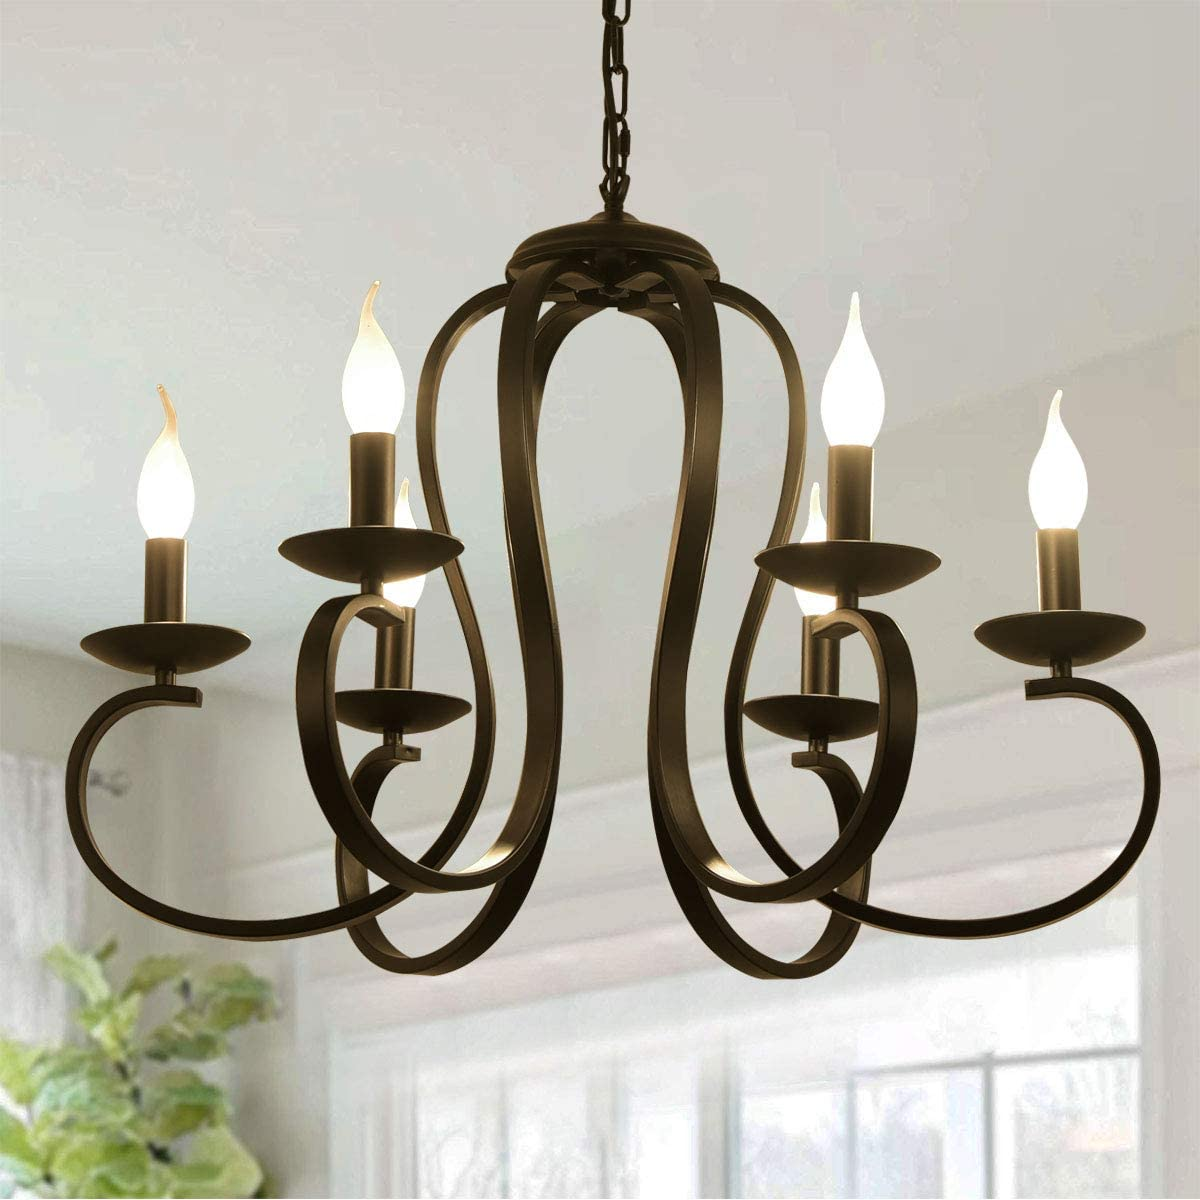 Ganeed 6 Lights Chandeliers,French Country Vintage Metal Chandelier Lighting,Candle-Style Pendant Light with Black Finish for Farmhouse,Dining Room,Kitchen Island,Foyer